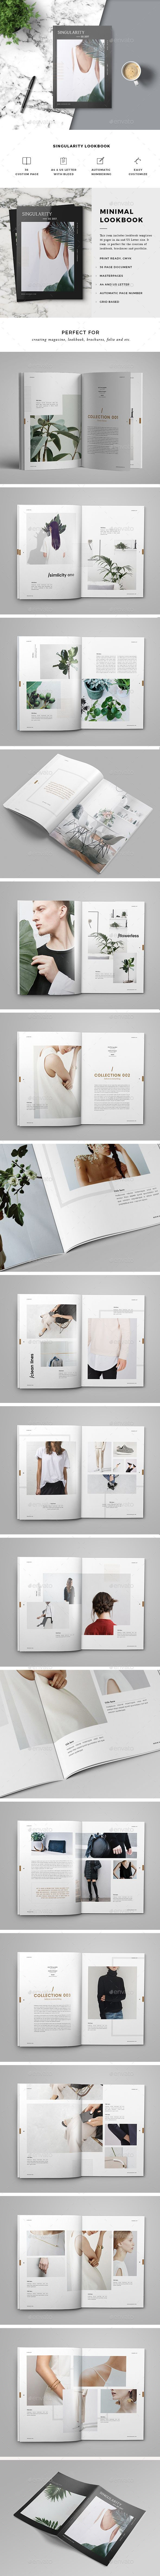 clean, clean cover, clean layout, clean magazine, cool, cs4, cs5, cs6, design, design magazine, editorial, flexible, graphic design, graphics, indesign, leaflet, letter size, lookbook, magazine, marketing, minimal, modern, multipurpose, print, white space, print-templates, magazines Lookbook Template: Professional, modern and clean template for any purpose. Features: 36 unique pages Size A4&US Letter Indd (InDesign format) Idml (InDesign format) Only free fonts Print-ready with bleed Grid/c...